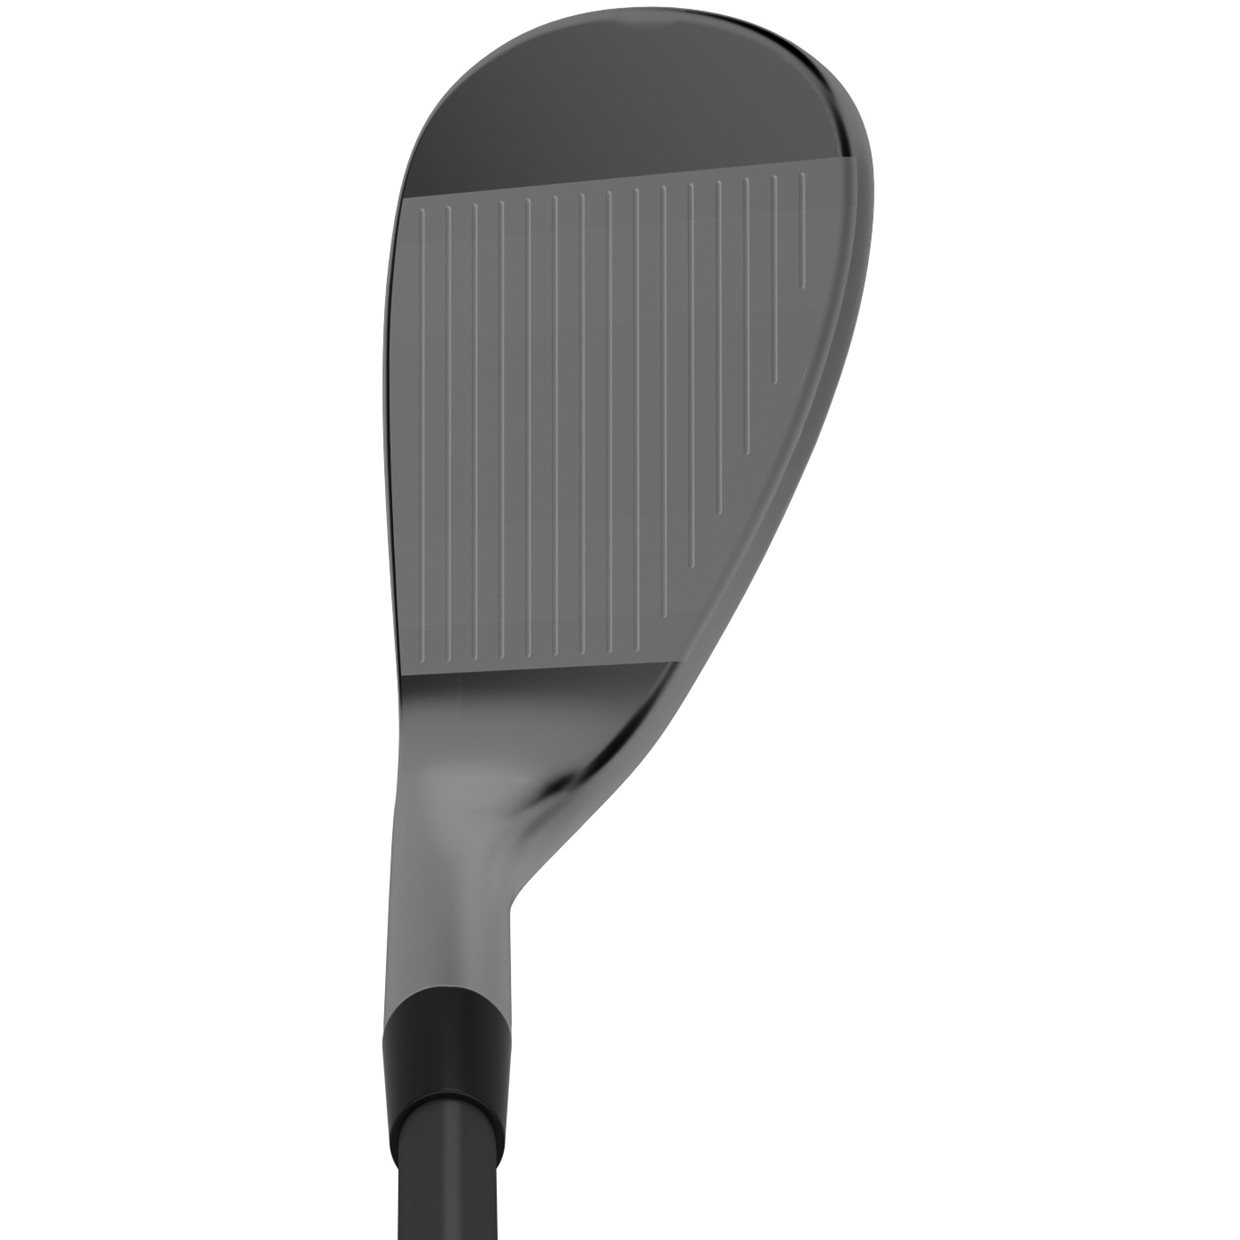 Tour Edge Hot Launch Hl3 Super Spin Black Nickel Wedge